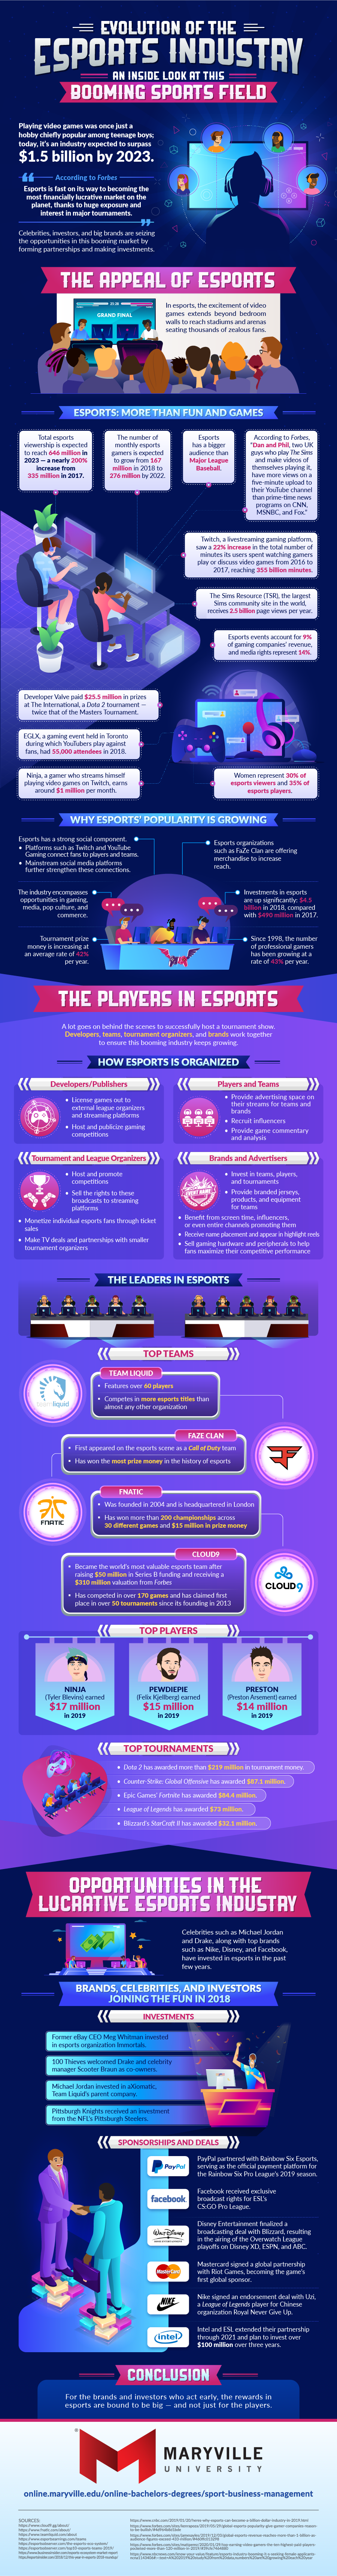 How esports has grown into a multi-billion dollar industry